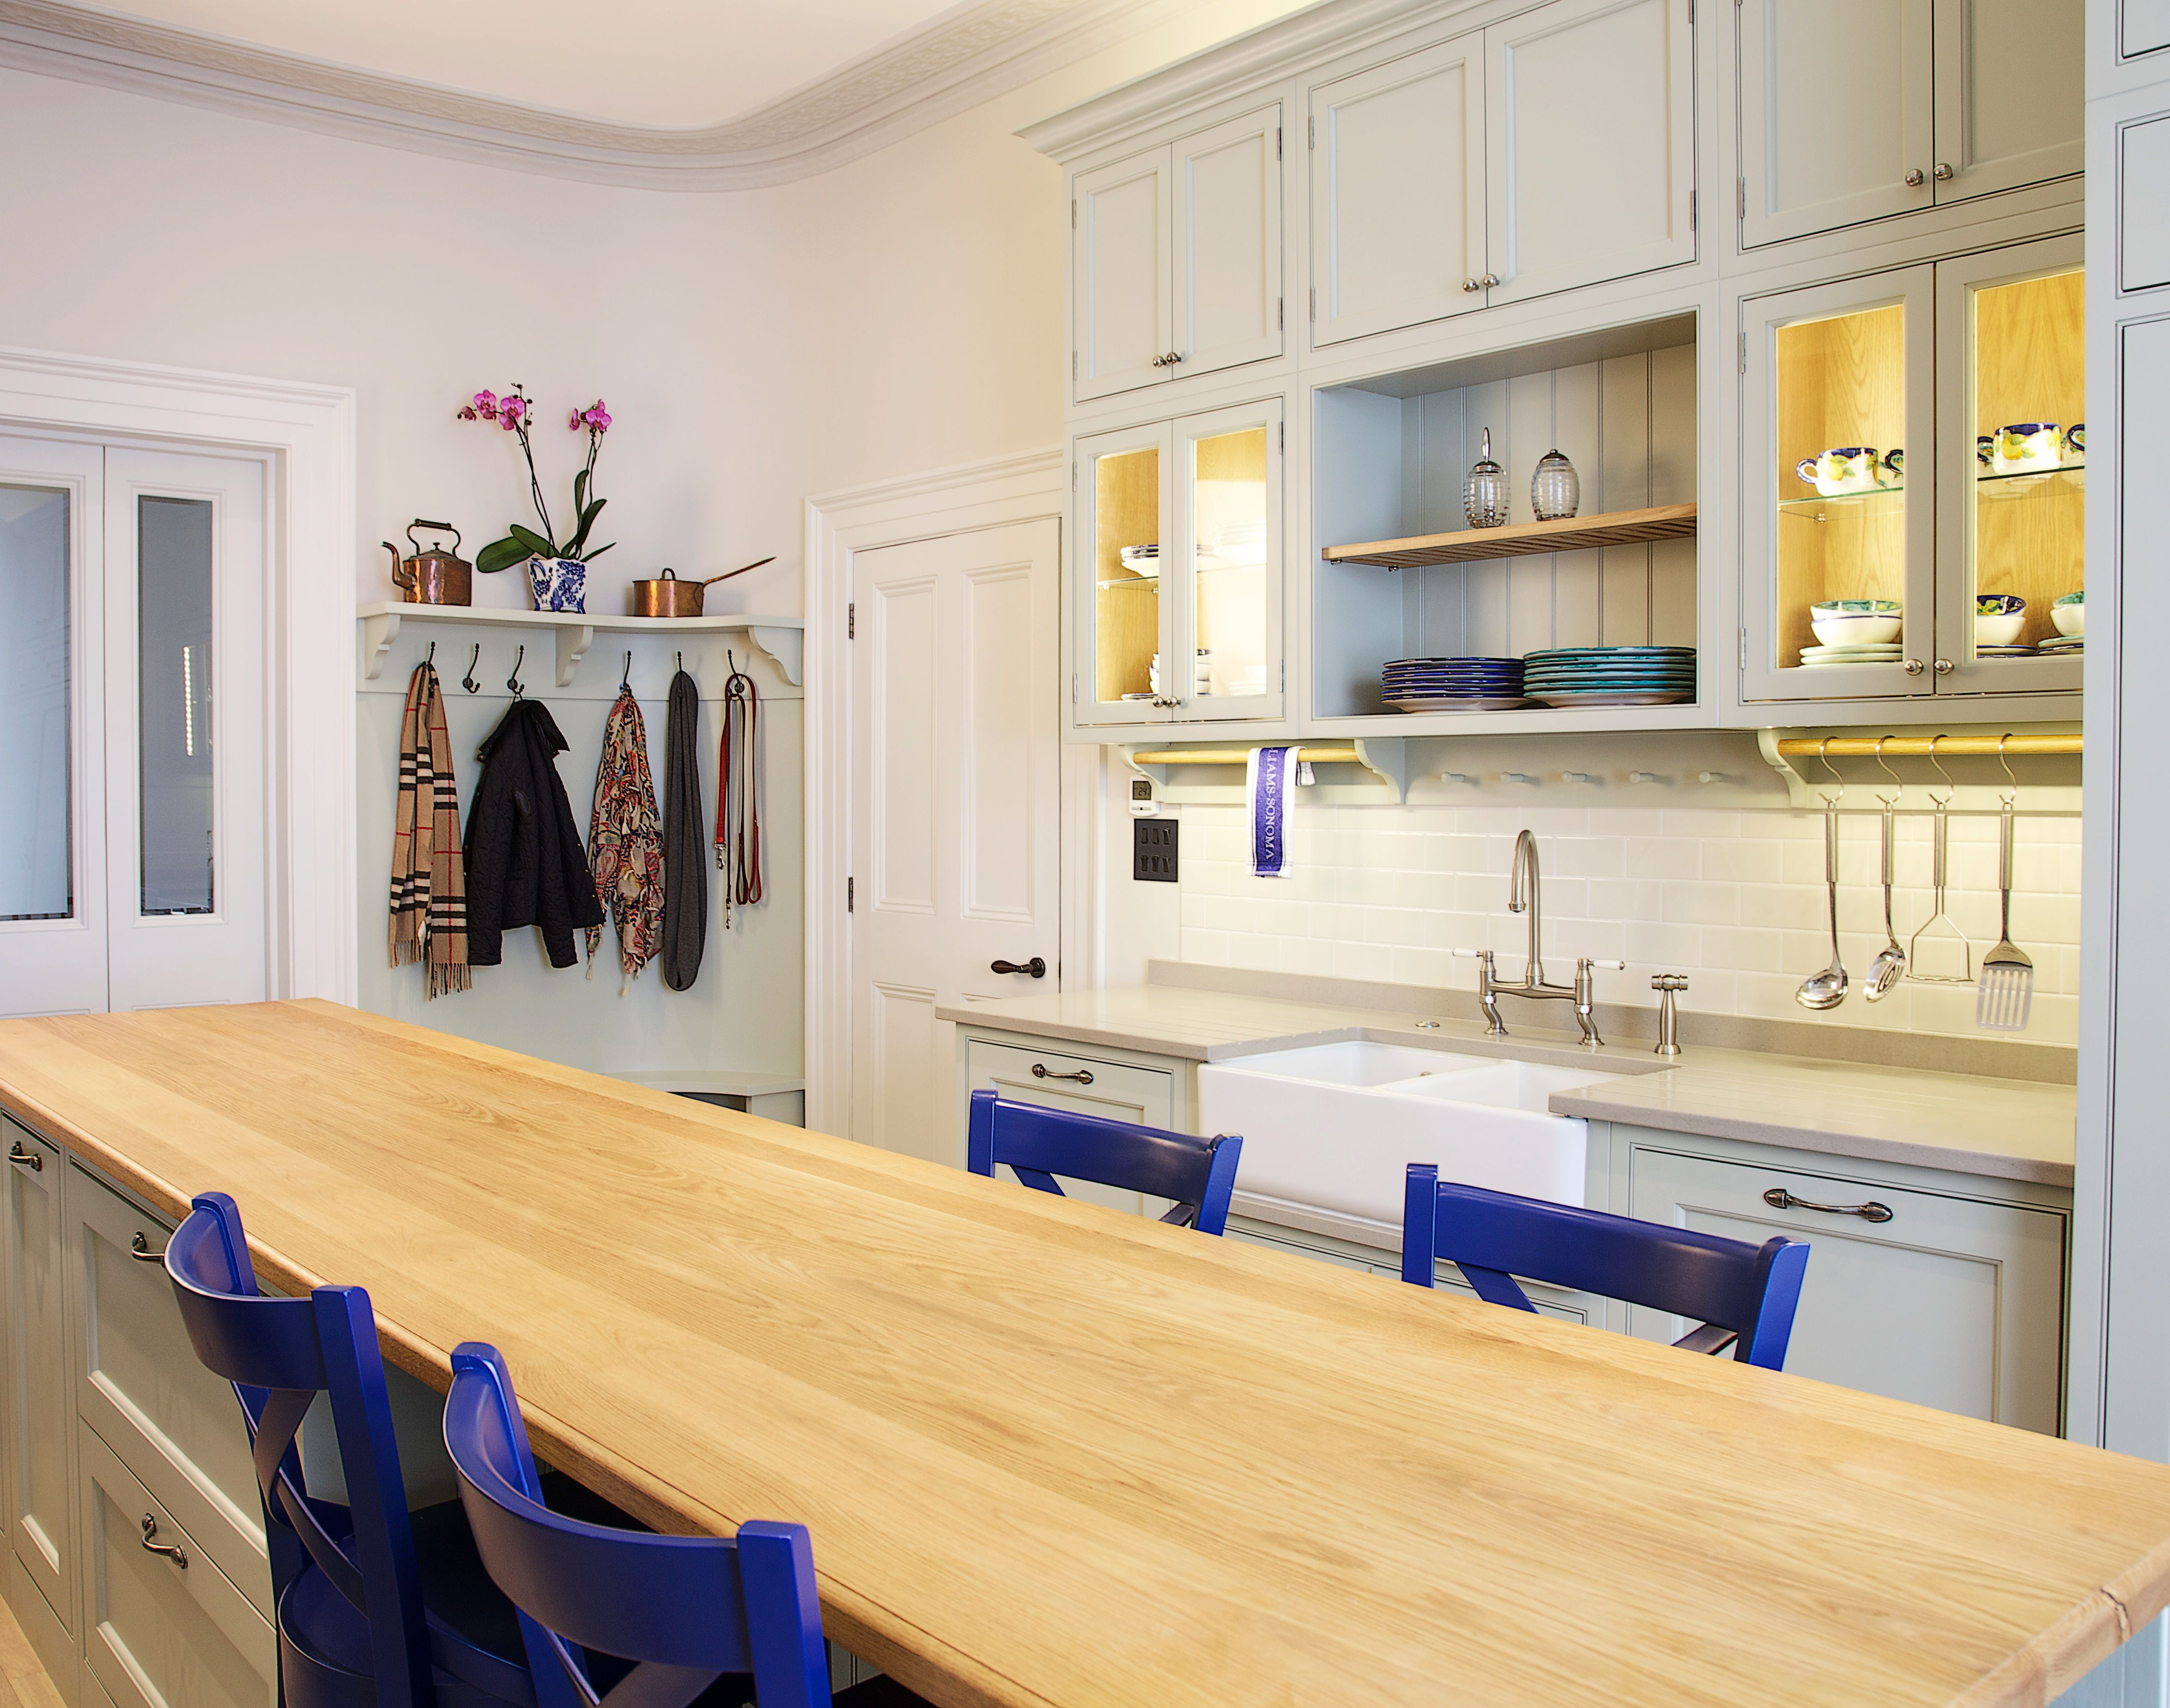 Charlie Kingham No. 32 Kitchen | Bespoke  Shaker Style Cabinets and traditional Kitchens and Interior Design Ideas. AGA Range Cooker, Hand painted Cupboards and Solid Oak Island and Stools